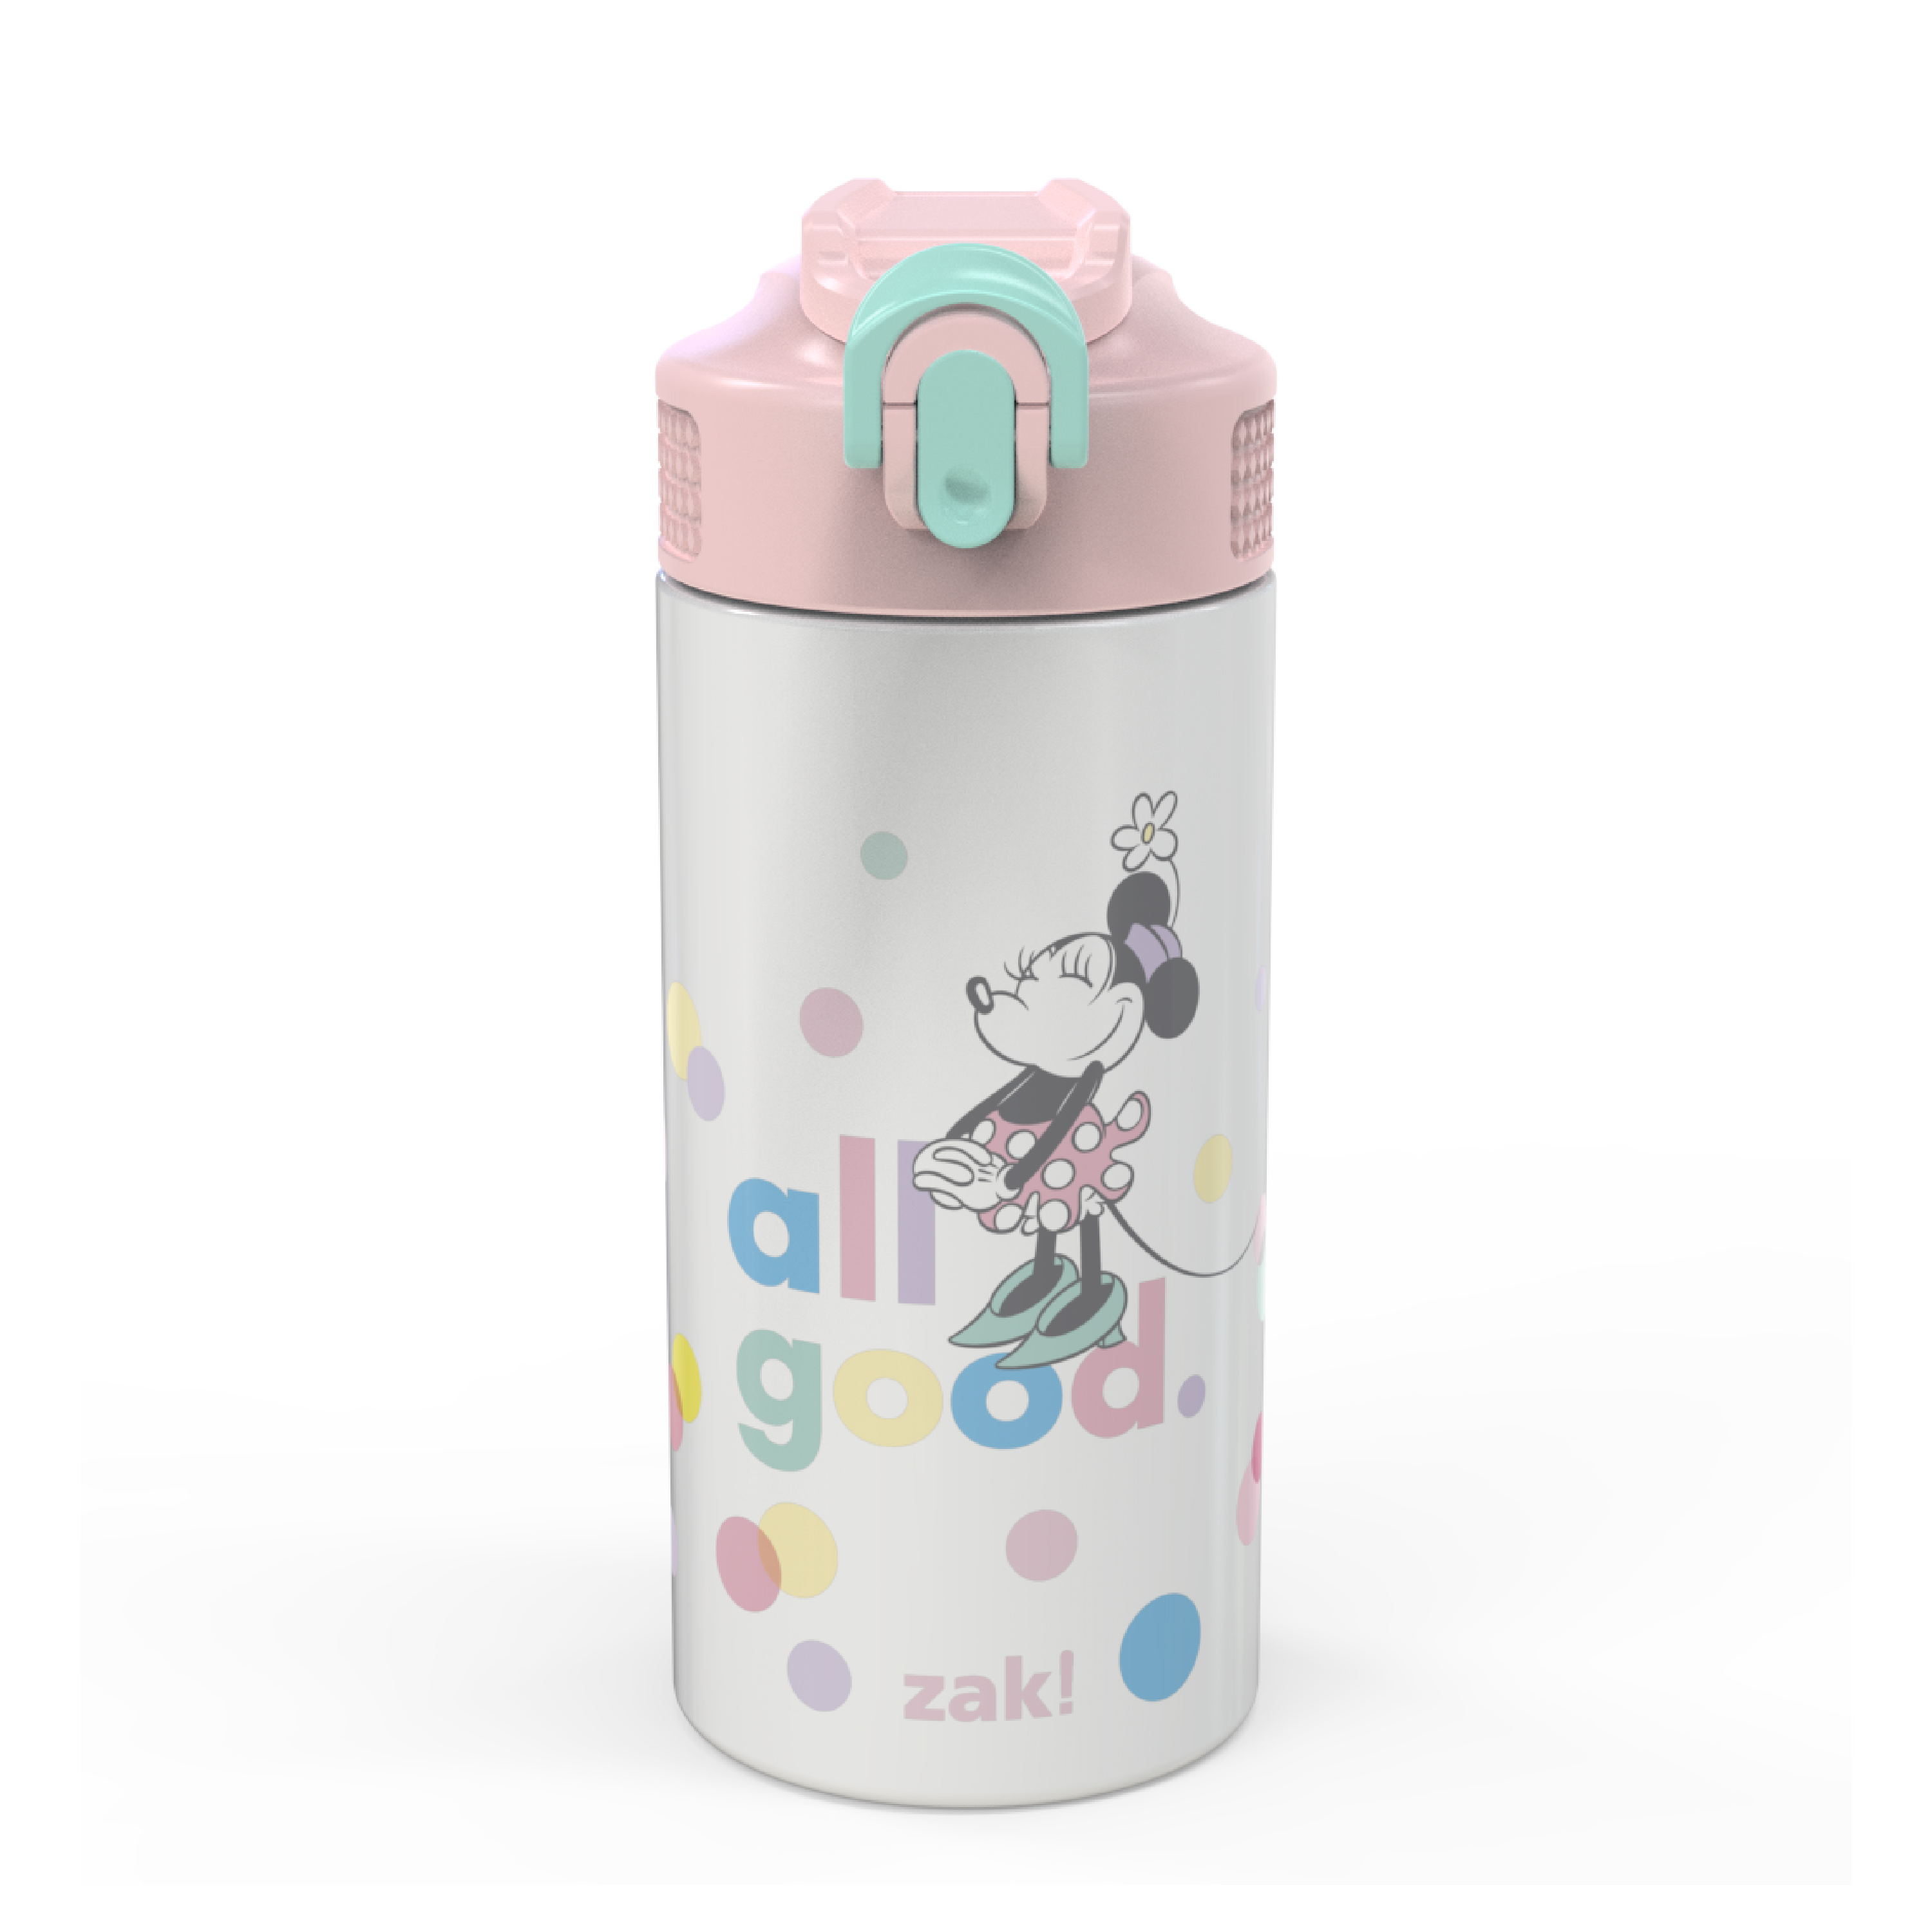 Disney 14 ounce Stainless Steel Vacuum Insulated Water Bottle, Minnie Mouse slideshow image 1